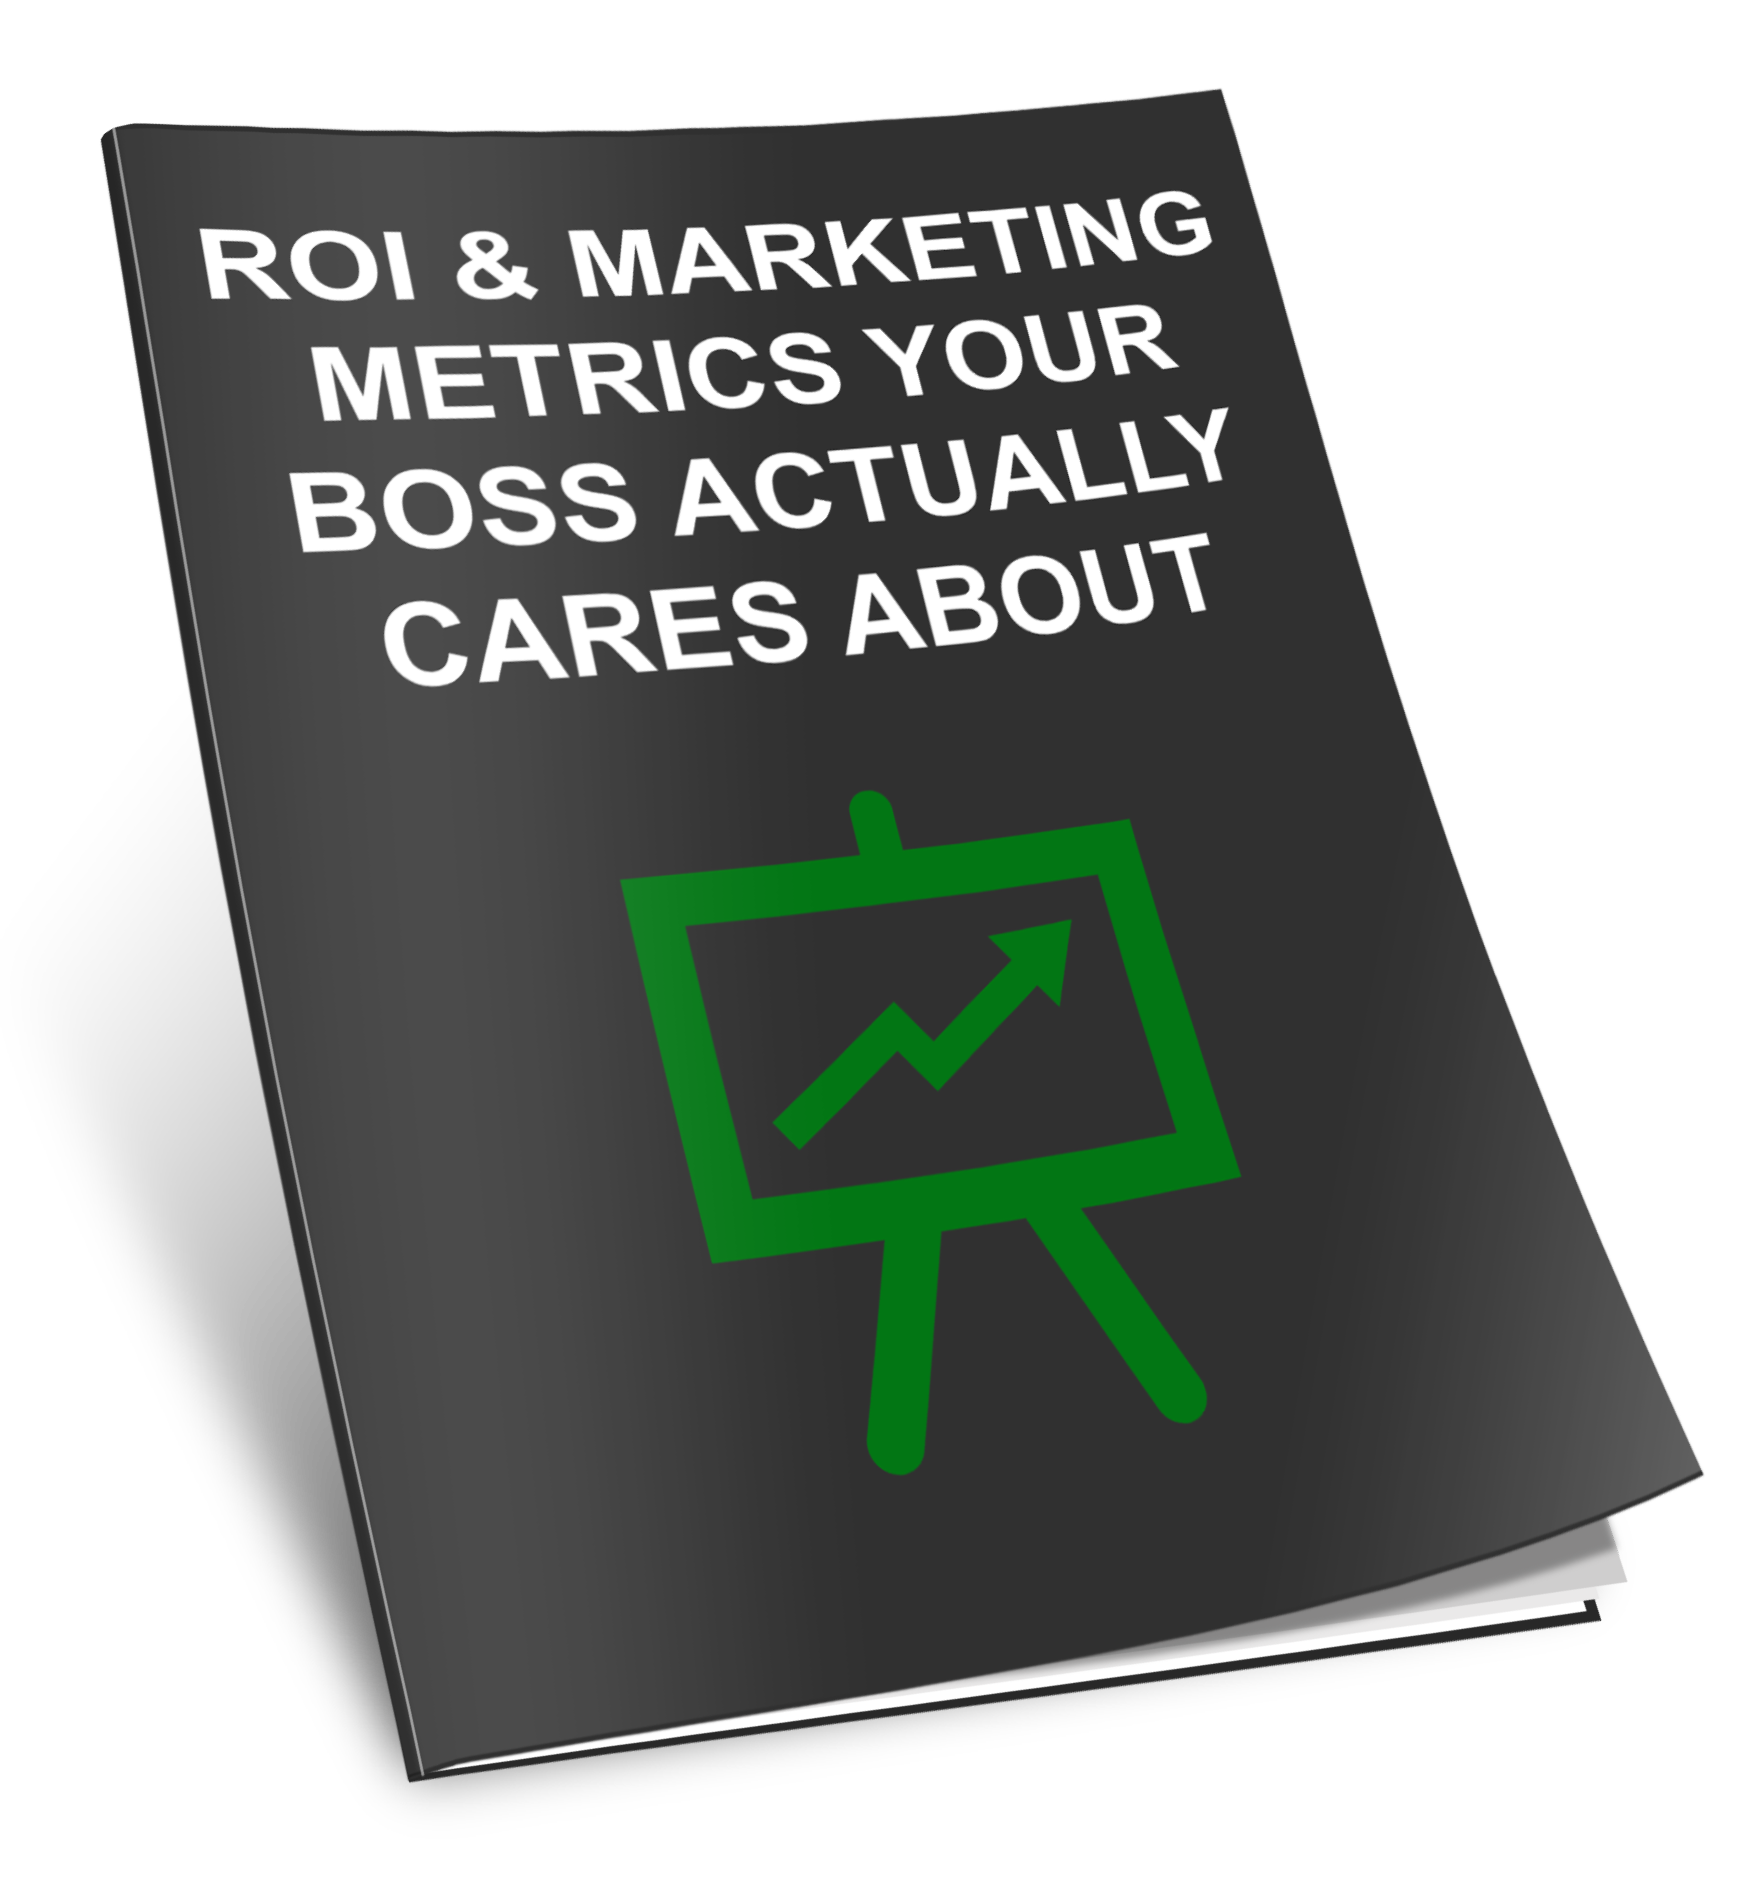 ROI & Marketing Metrics Your Boss Actually Cares About